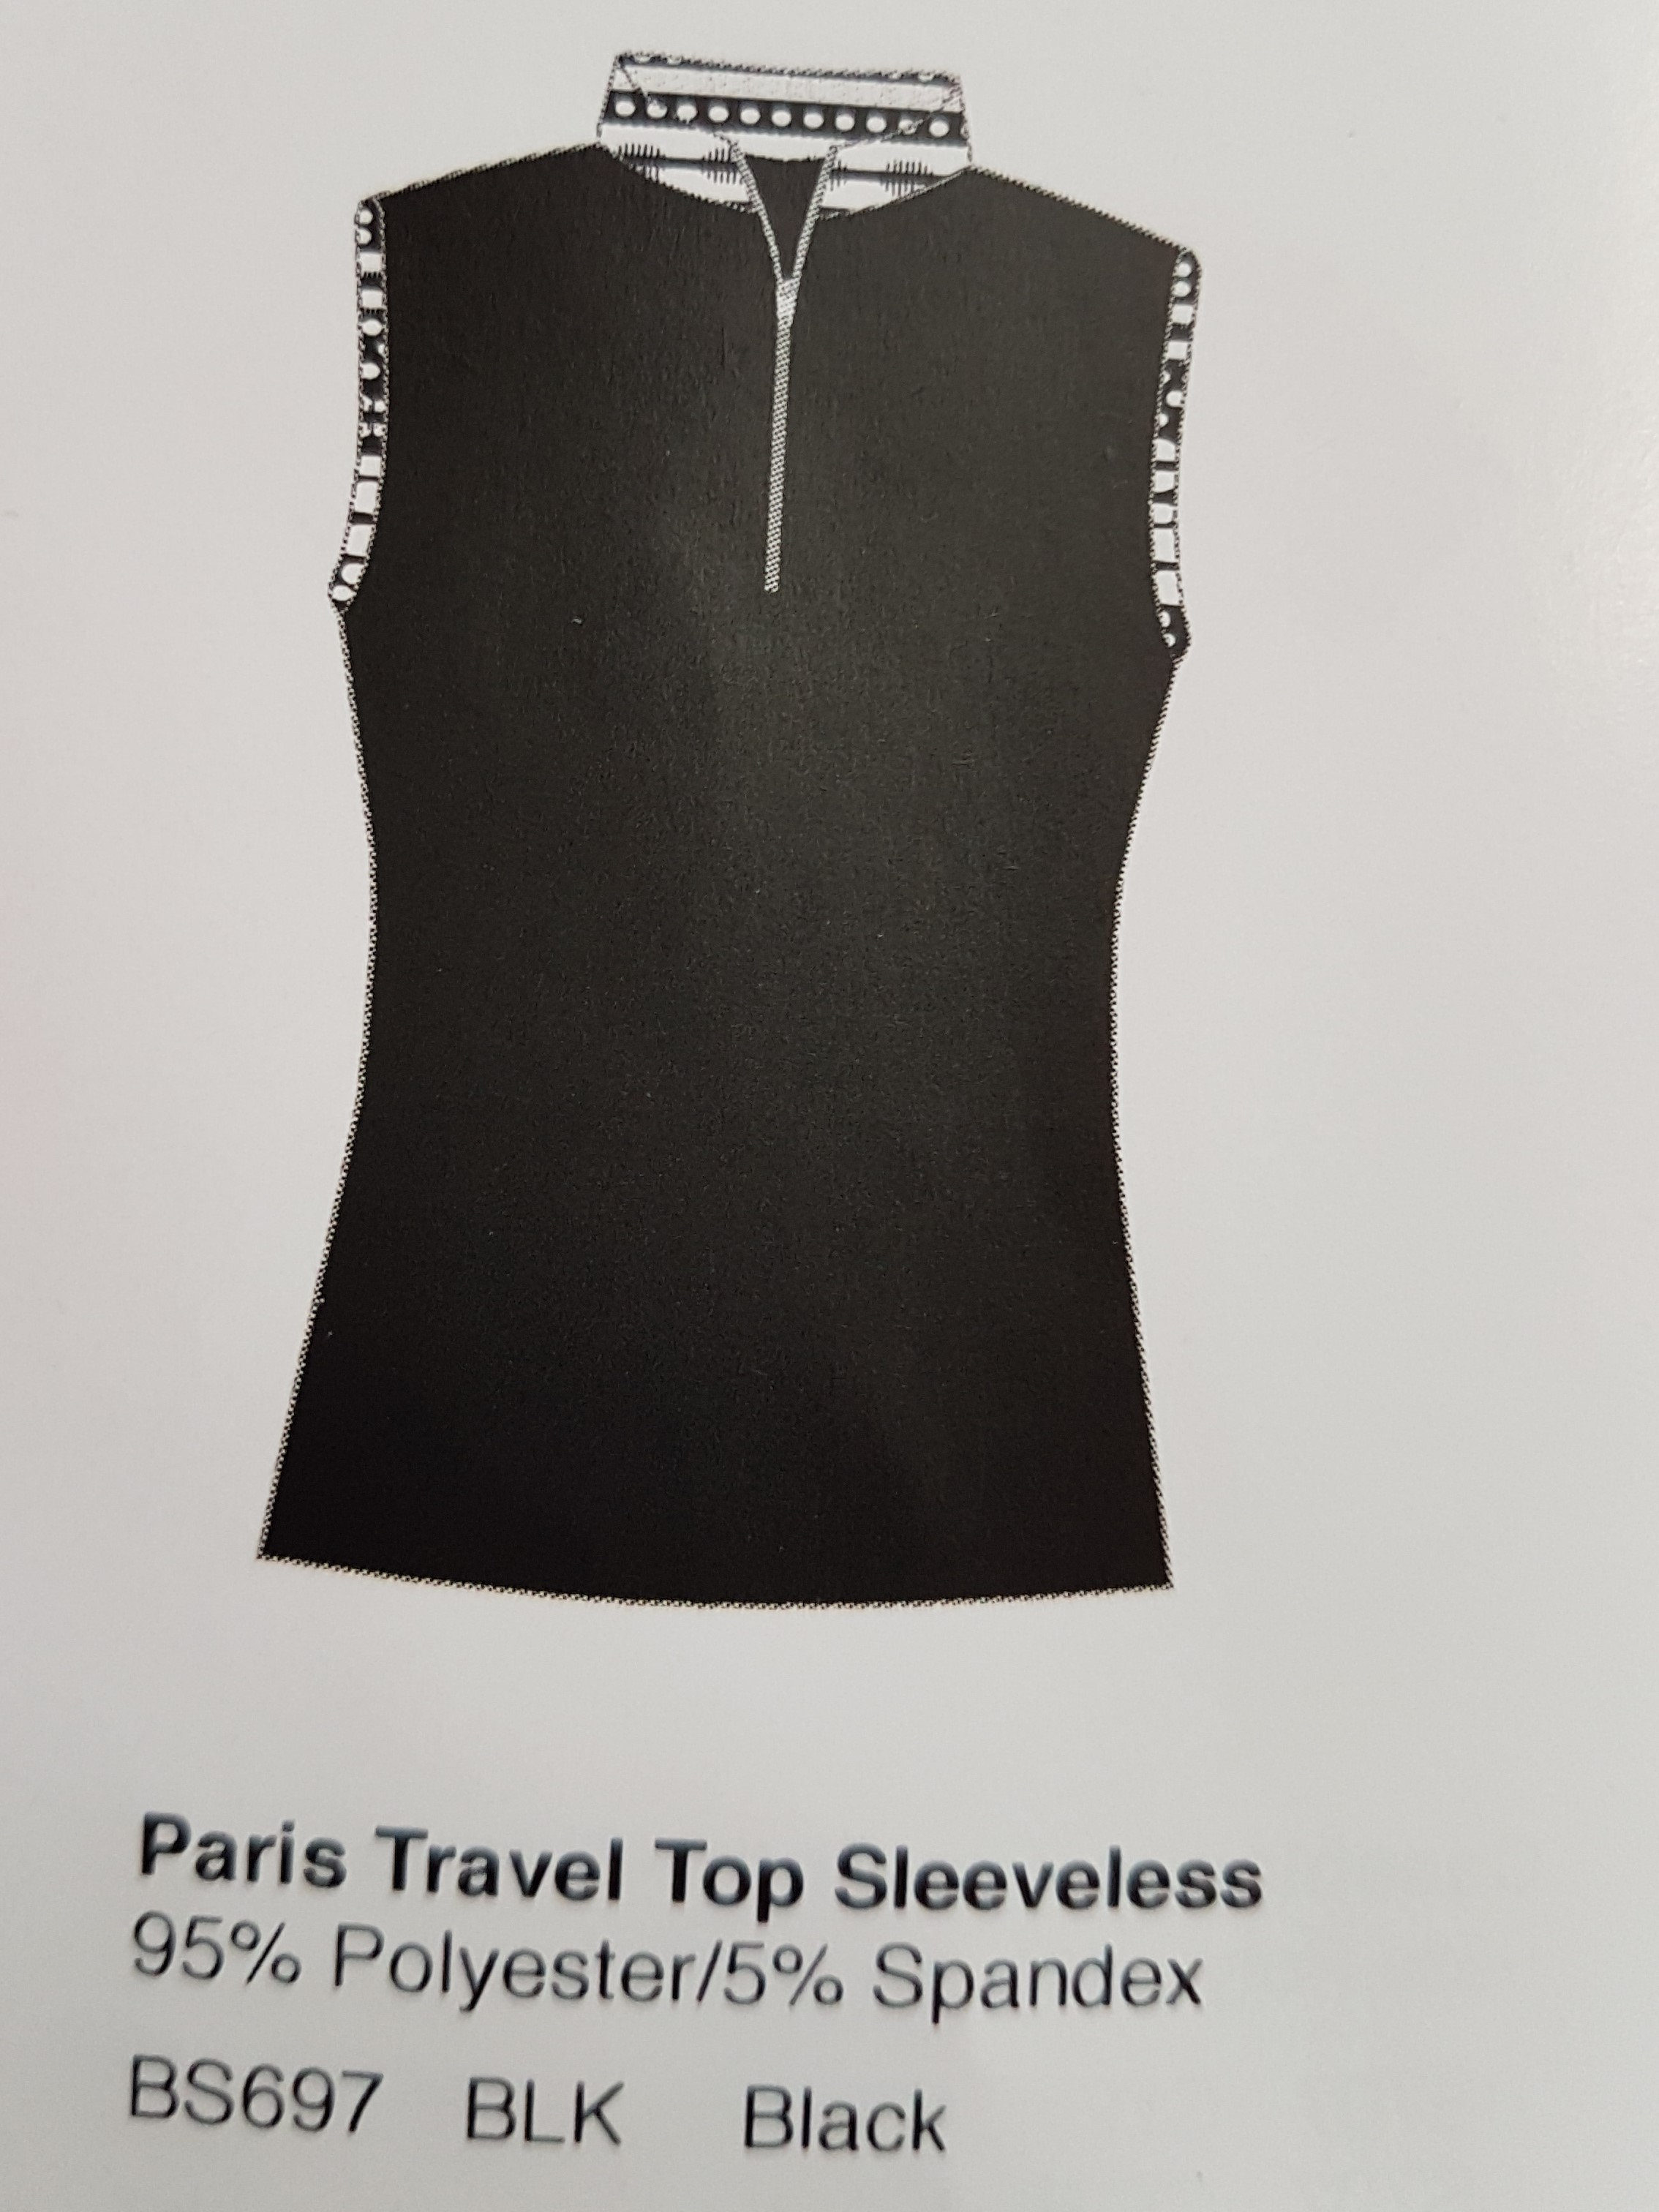 BS697 Paris s/l black.jpg